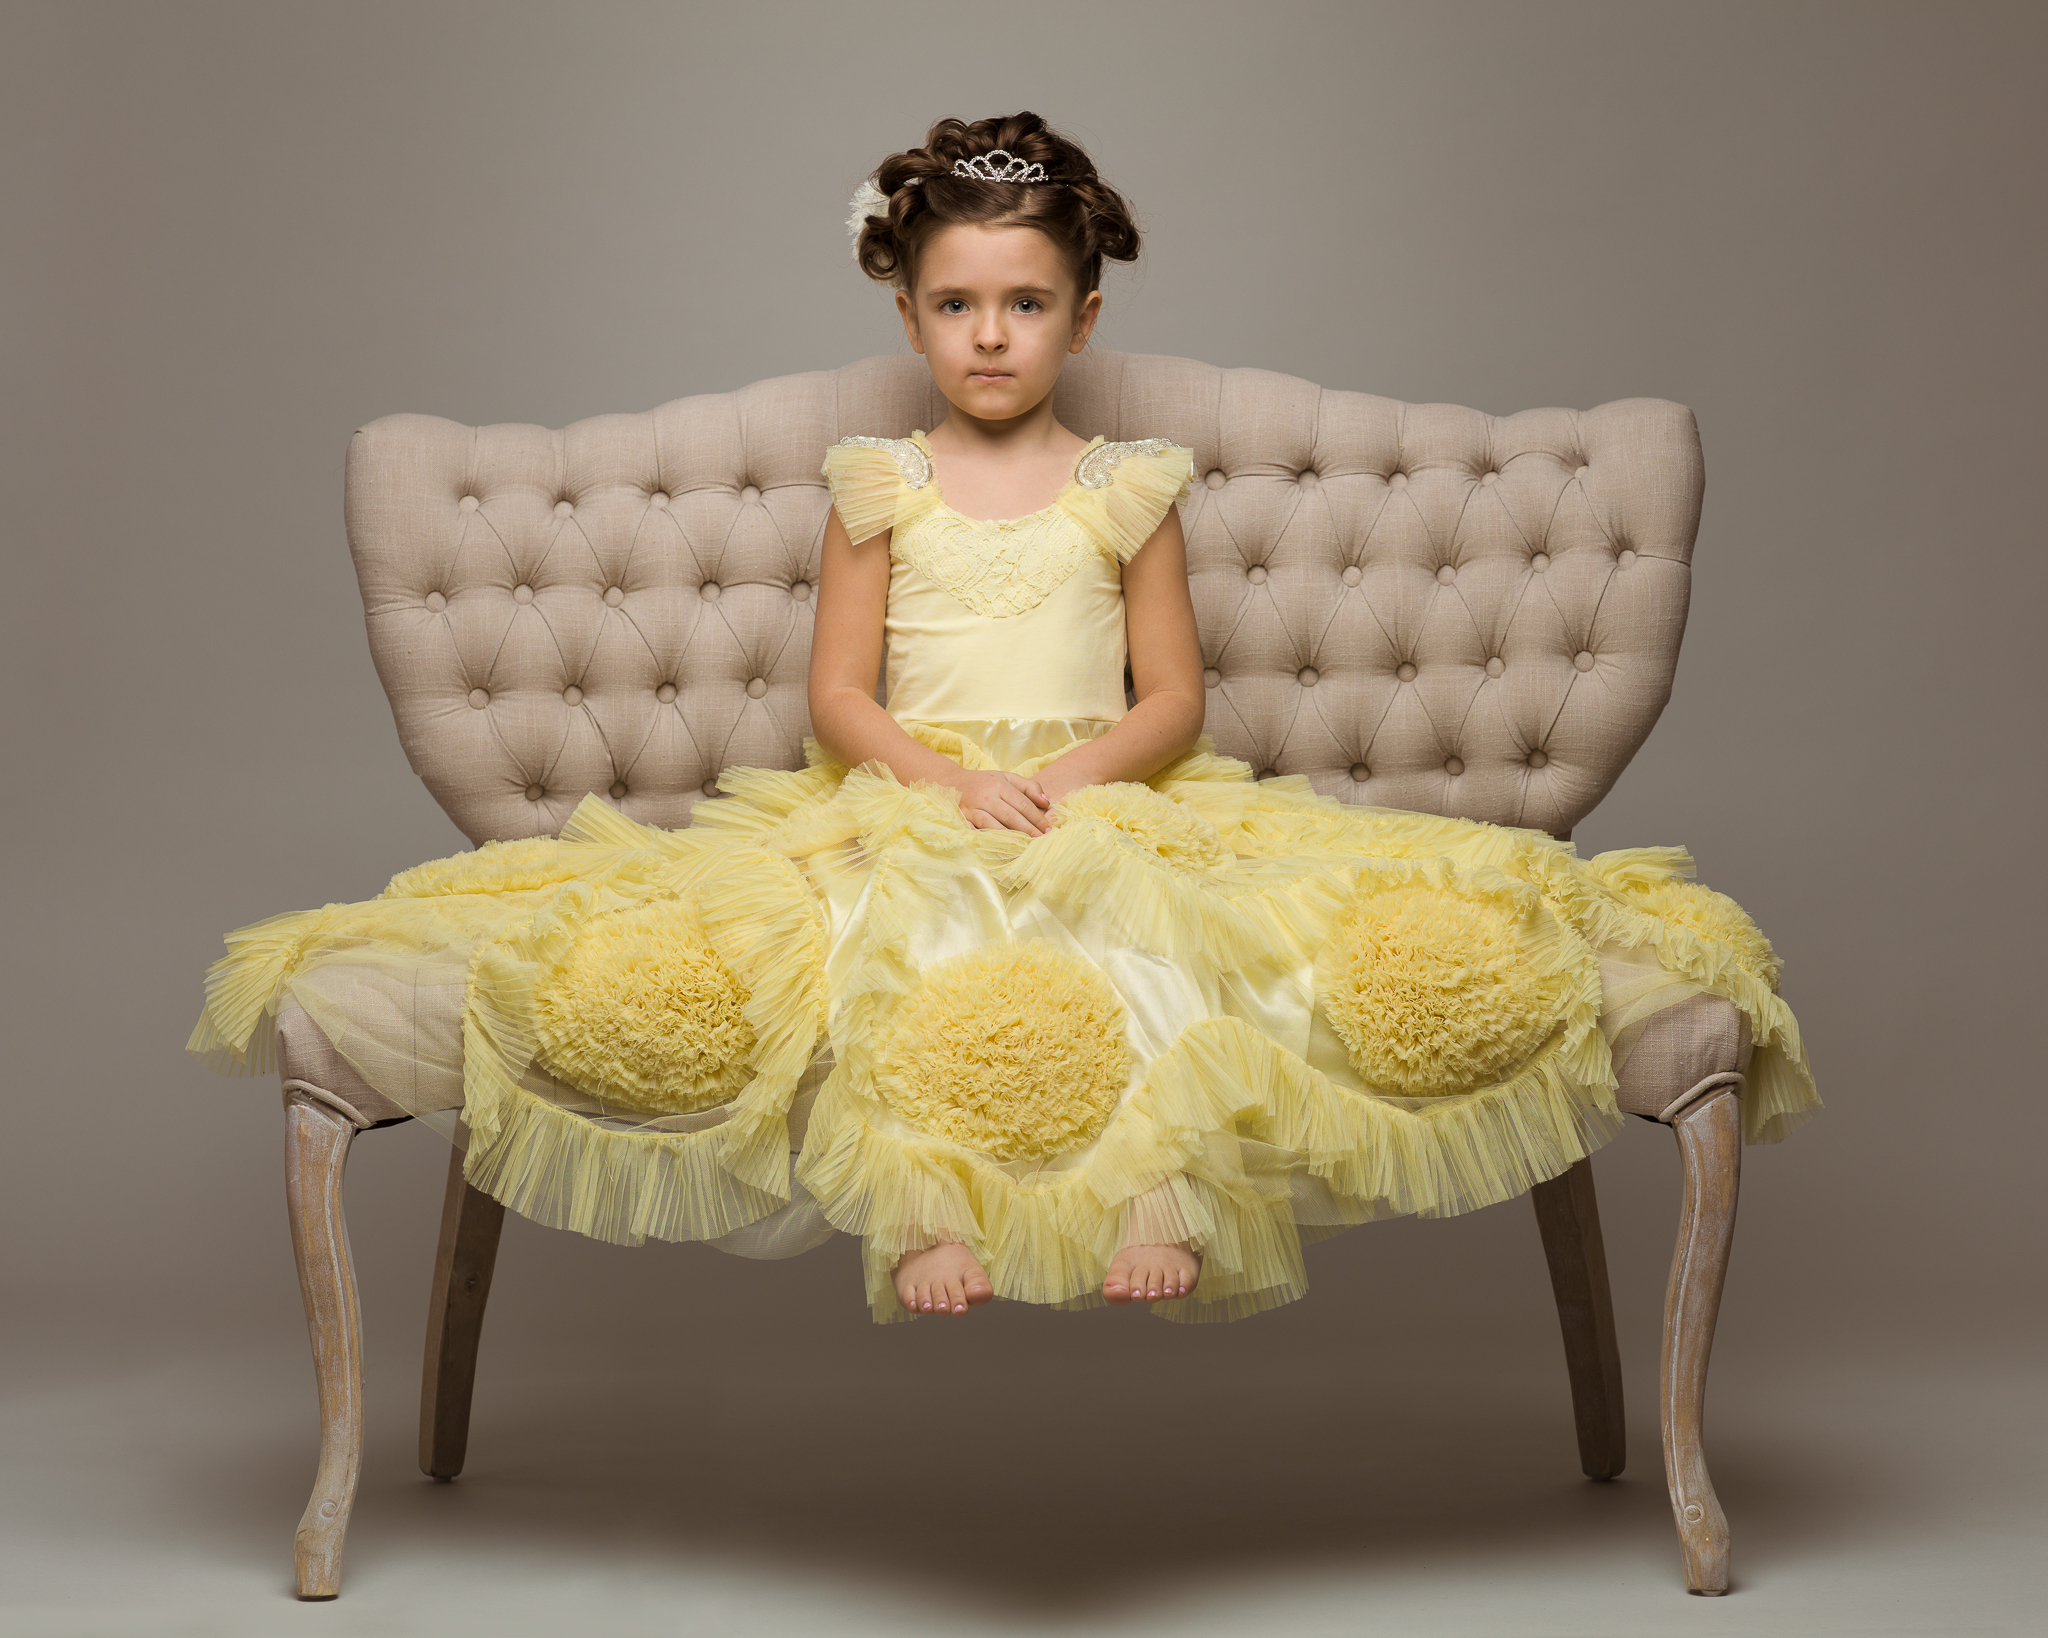 Classic-Couture-White-On-White-Settee-Fairy-Tale-Frock-Dollcake-Oh-So-Girly-Yellow-Dress-Princess-Ph